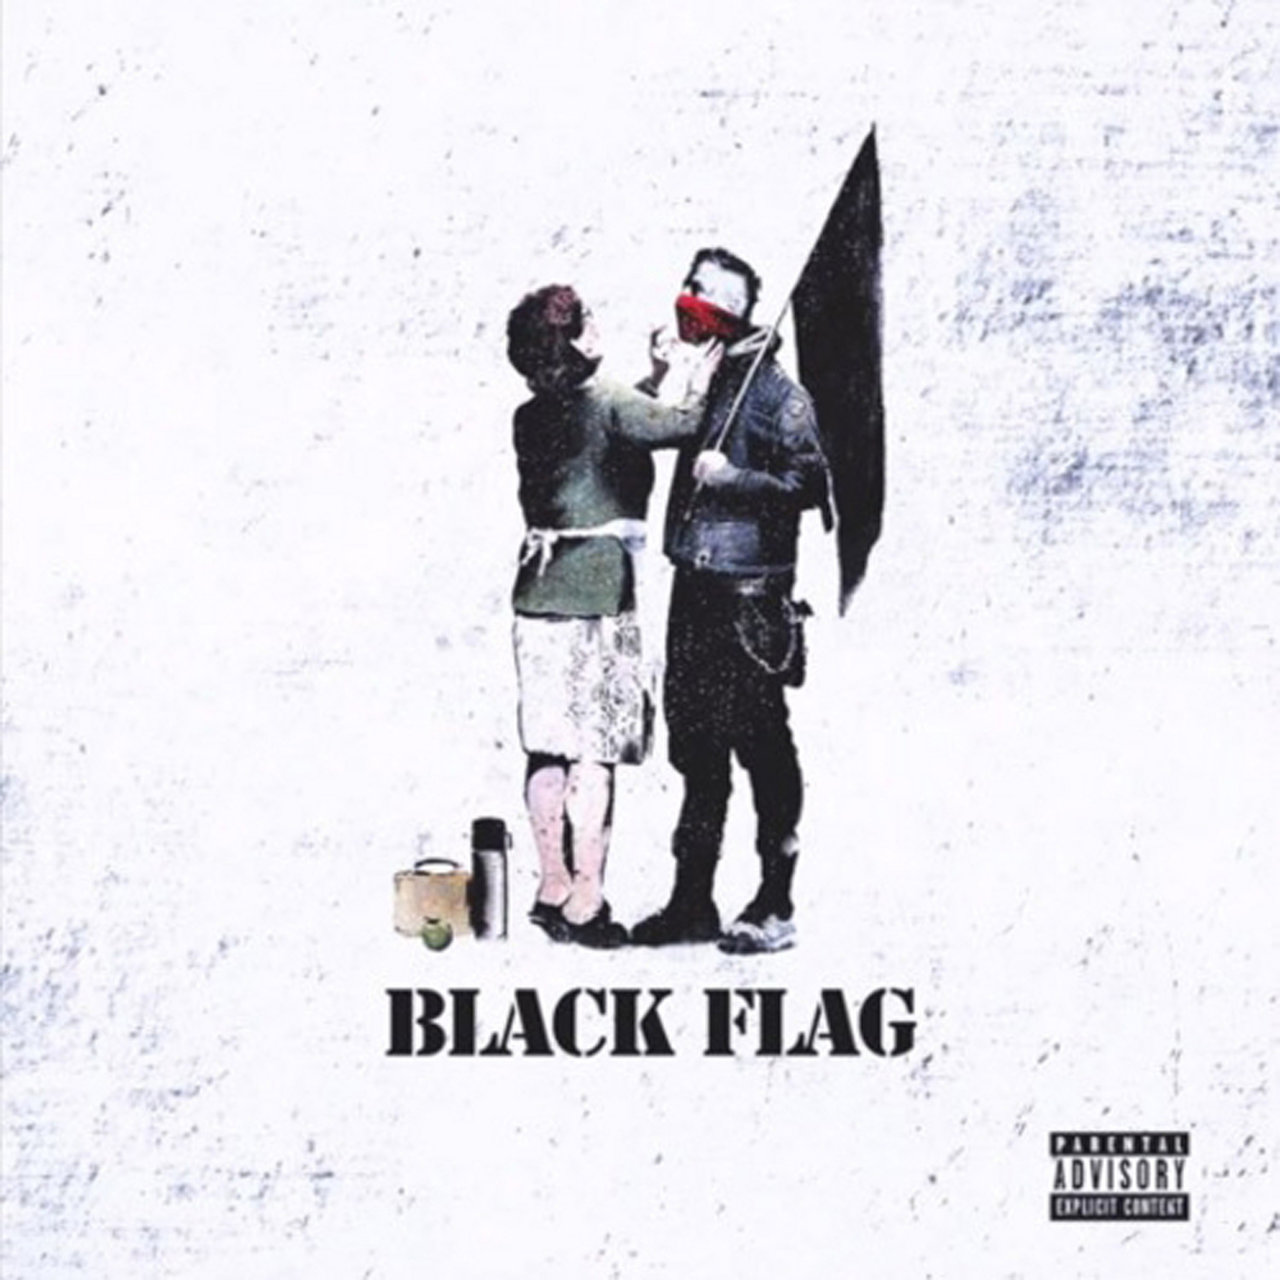 Black Flag (Deluxe Edition)